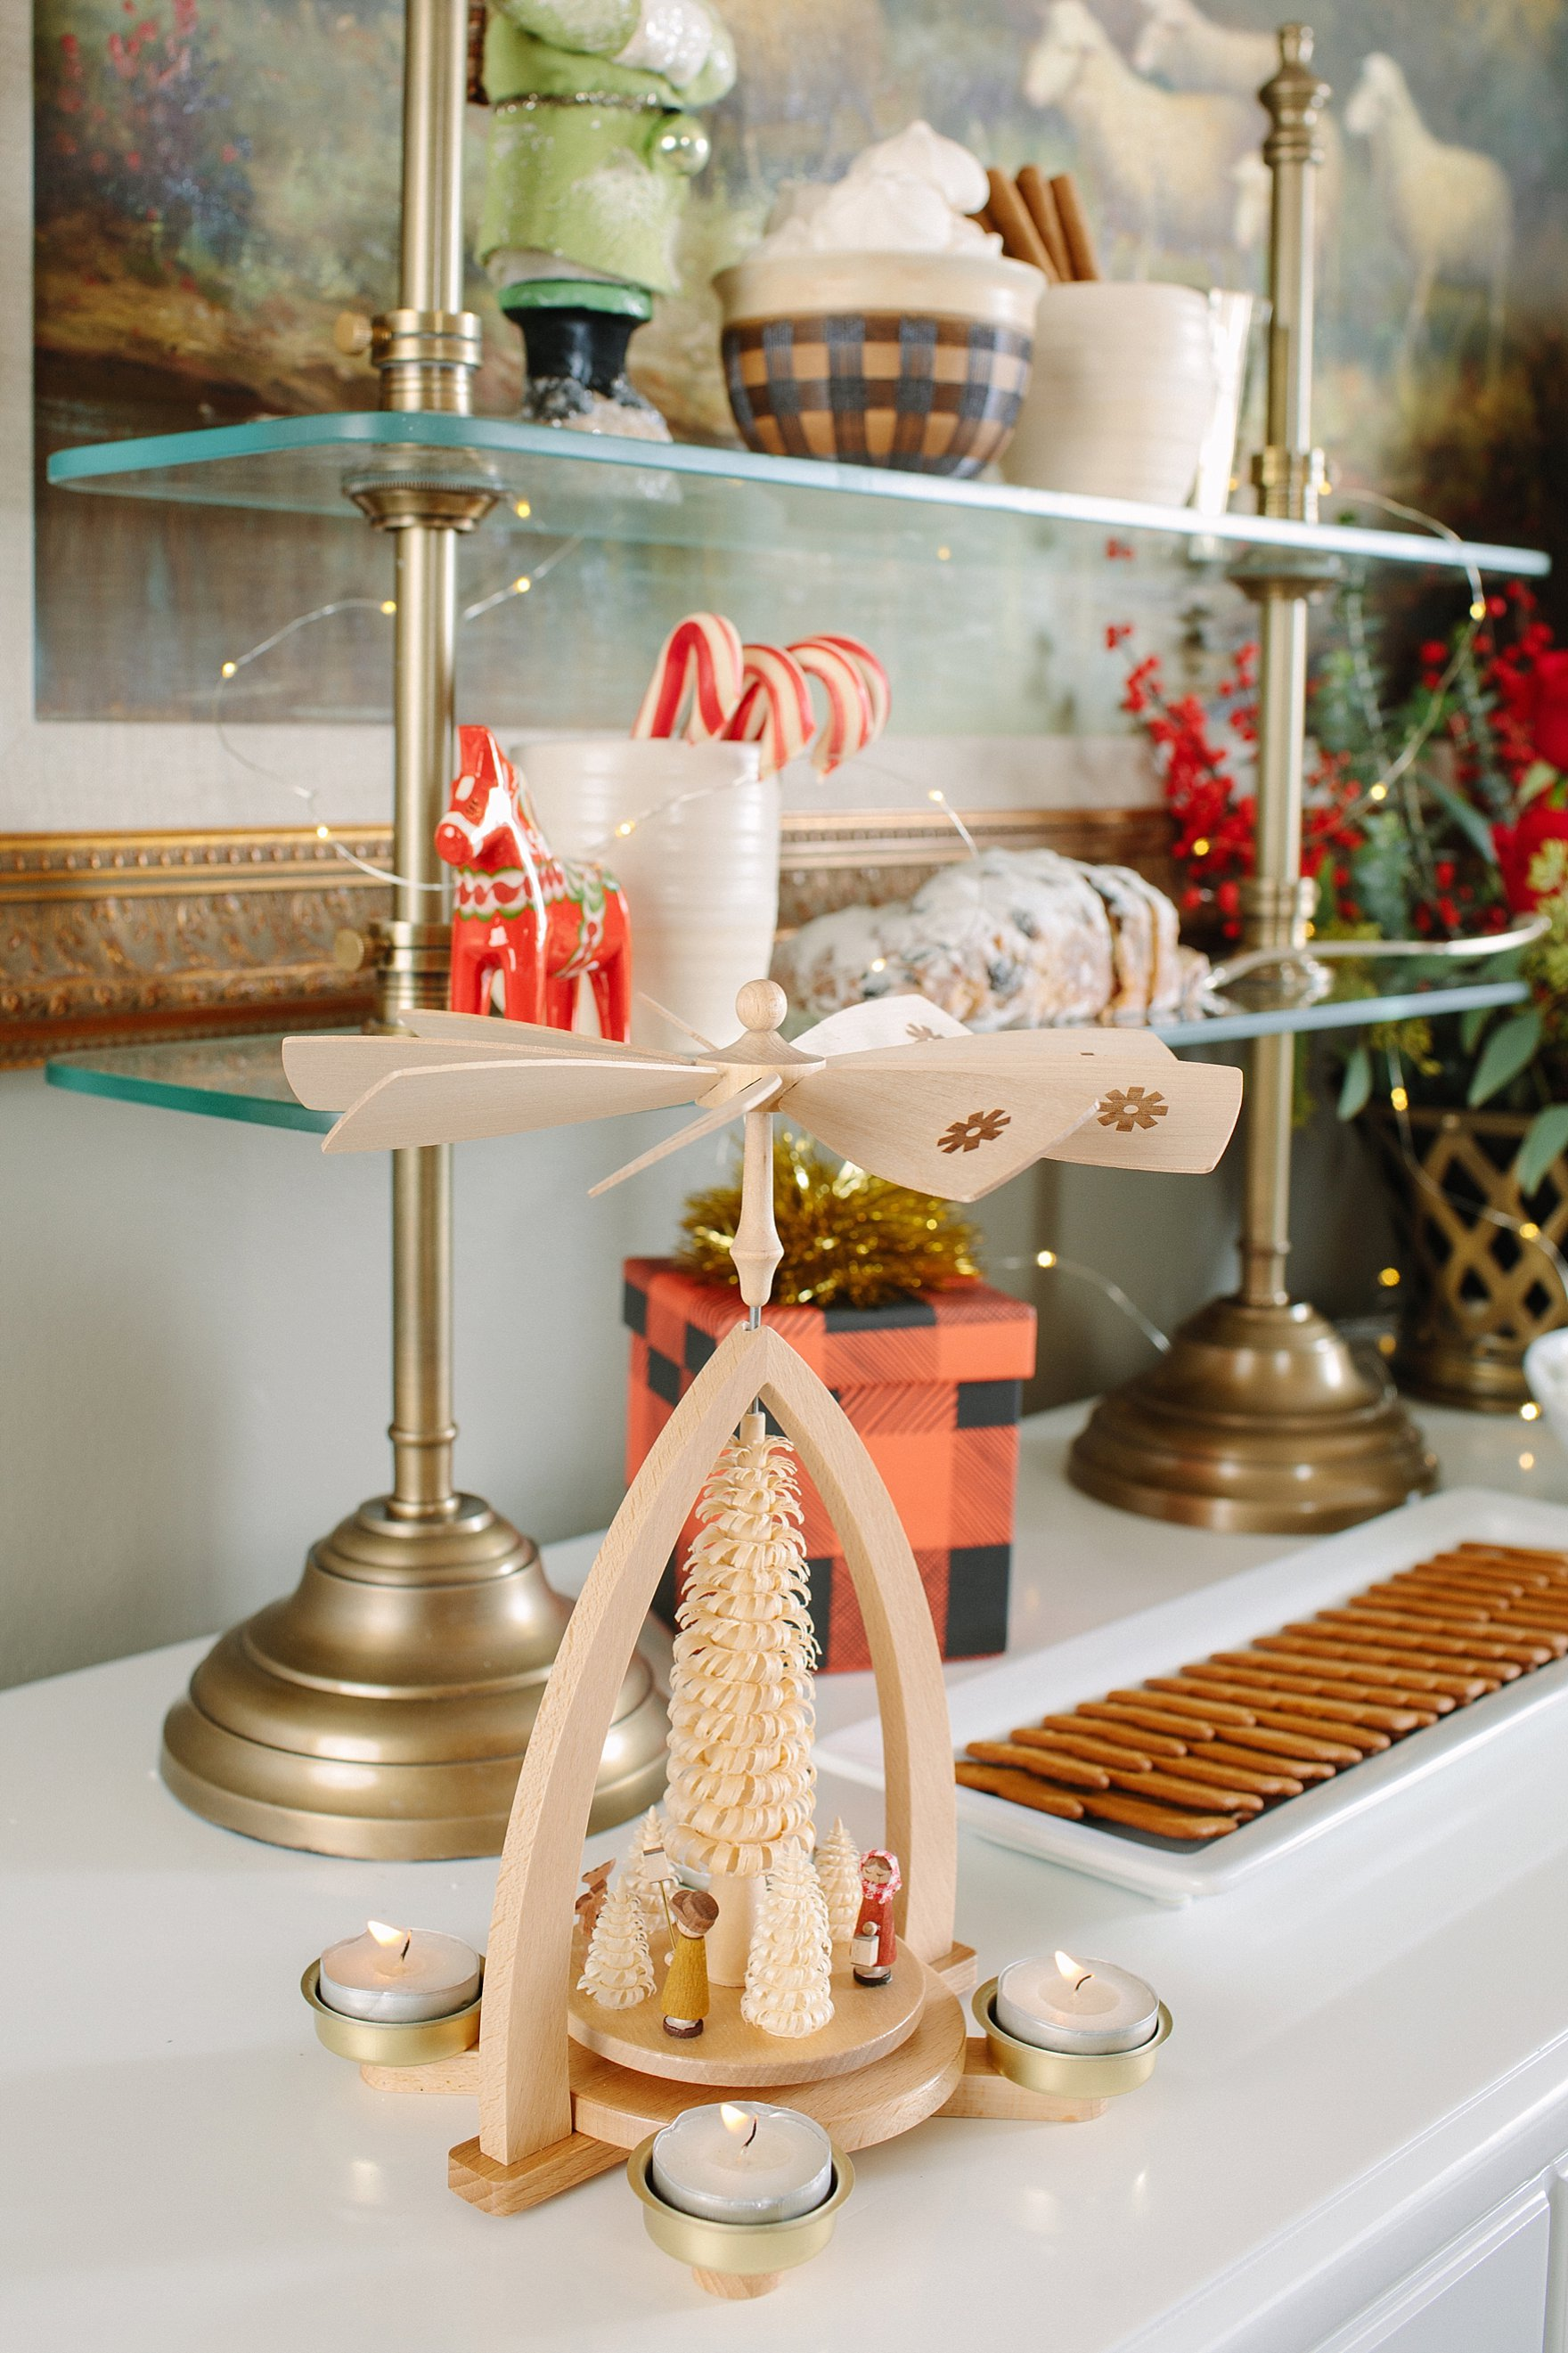 Christmas holiday tables cape inspiration red green and white Ballard Designs with blogger Diana Elizabeth - hot cocoa bar